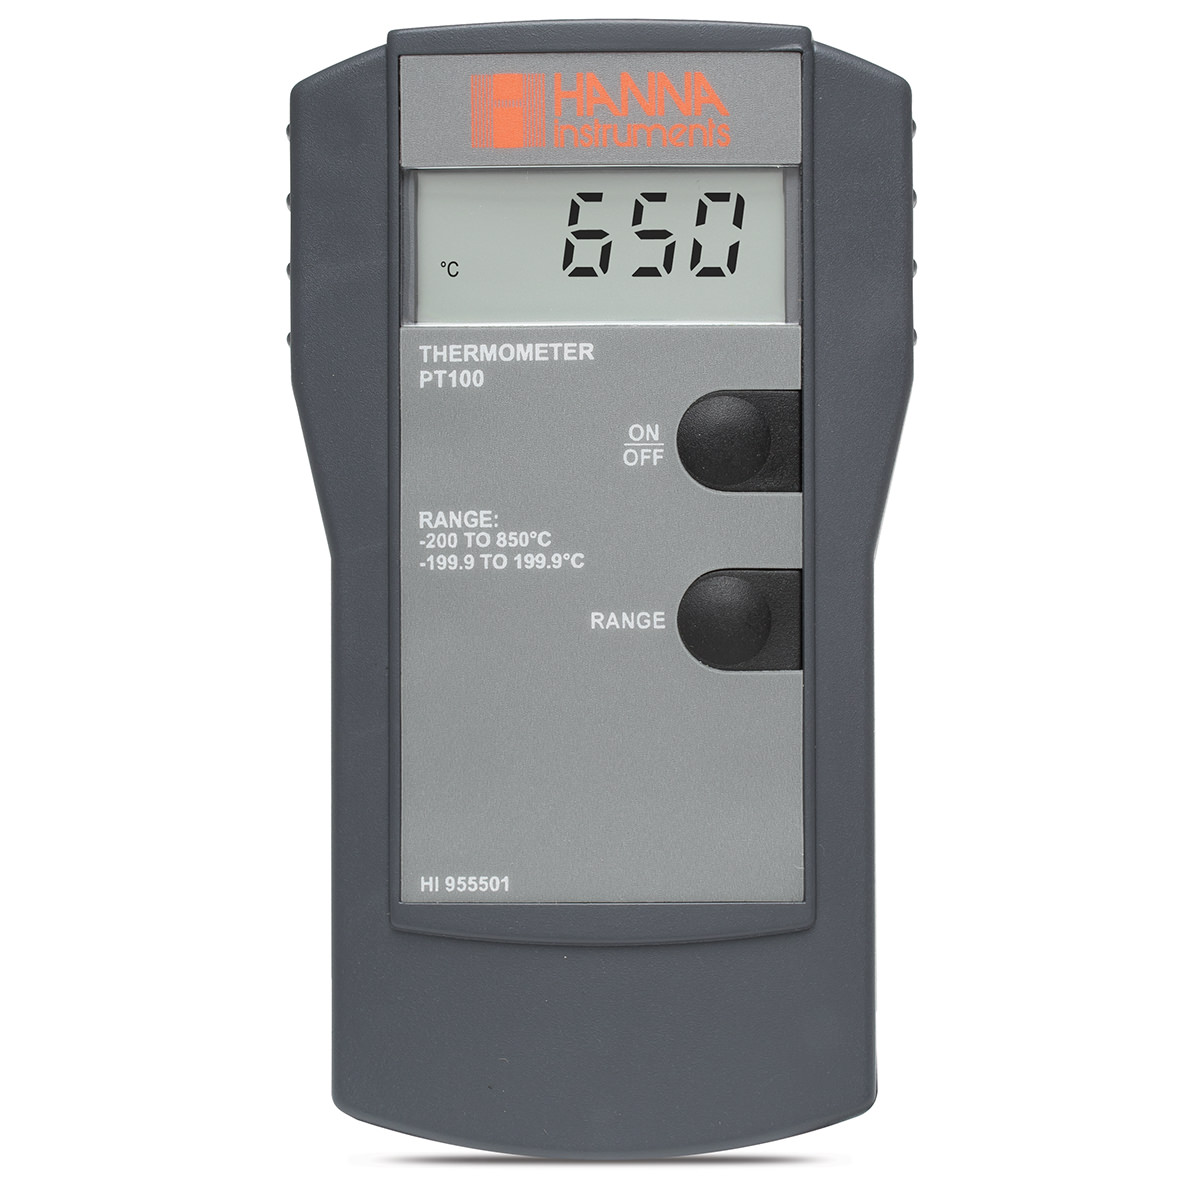 4-Wire Pt100 Thermometer - HI955501